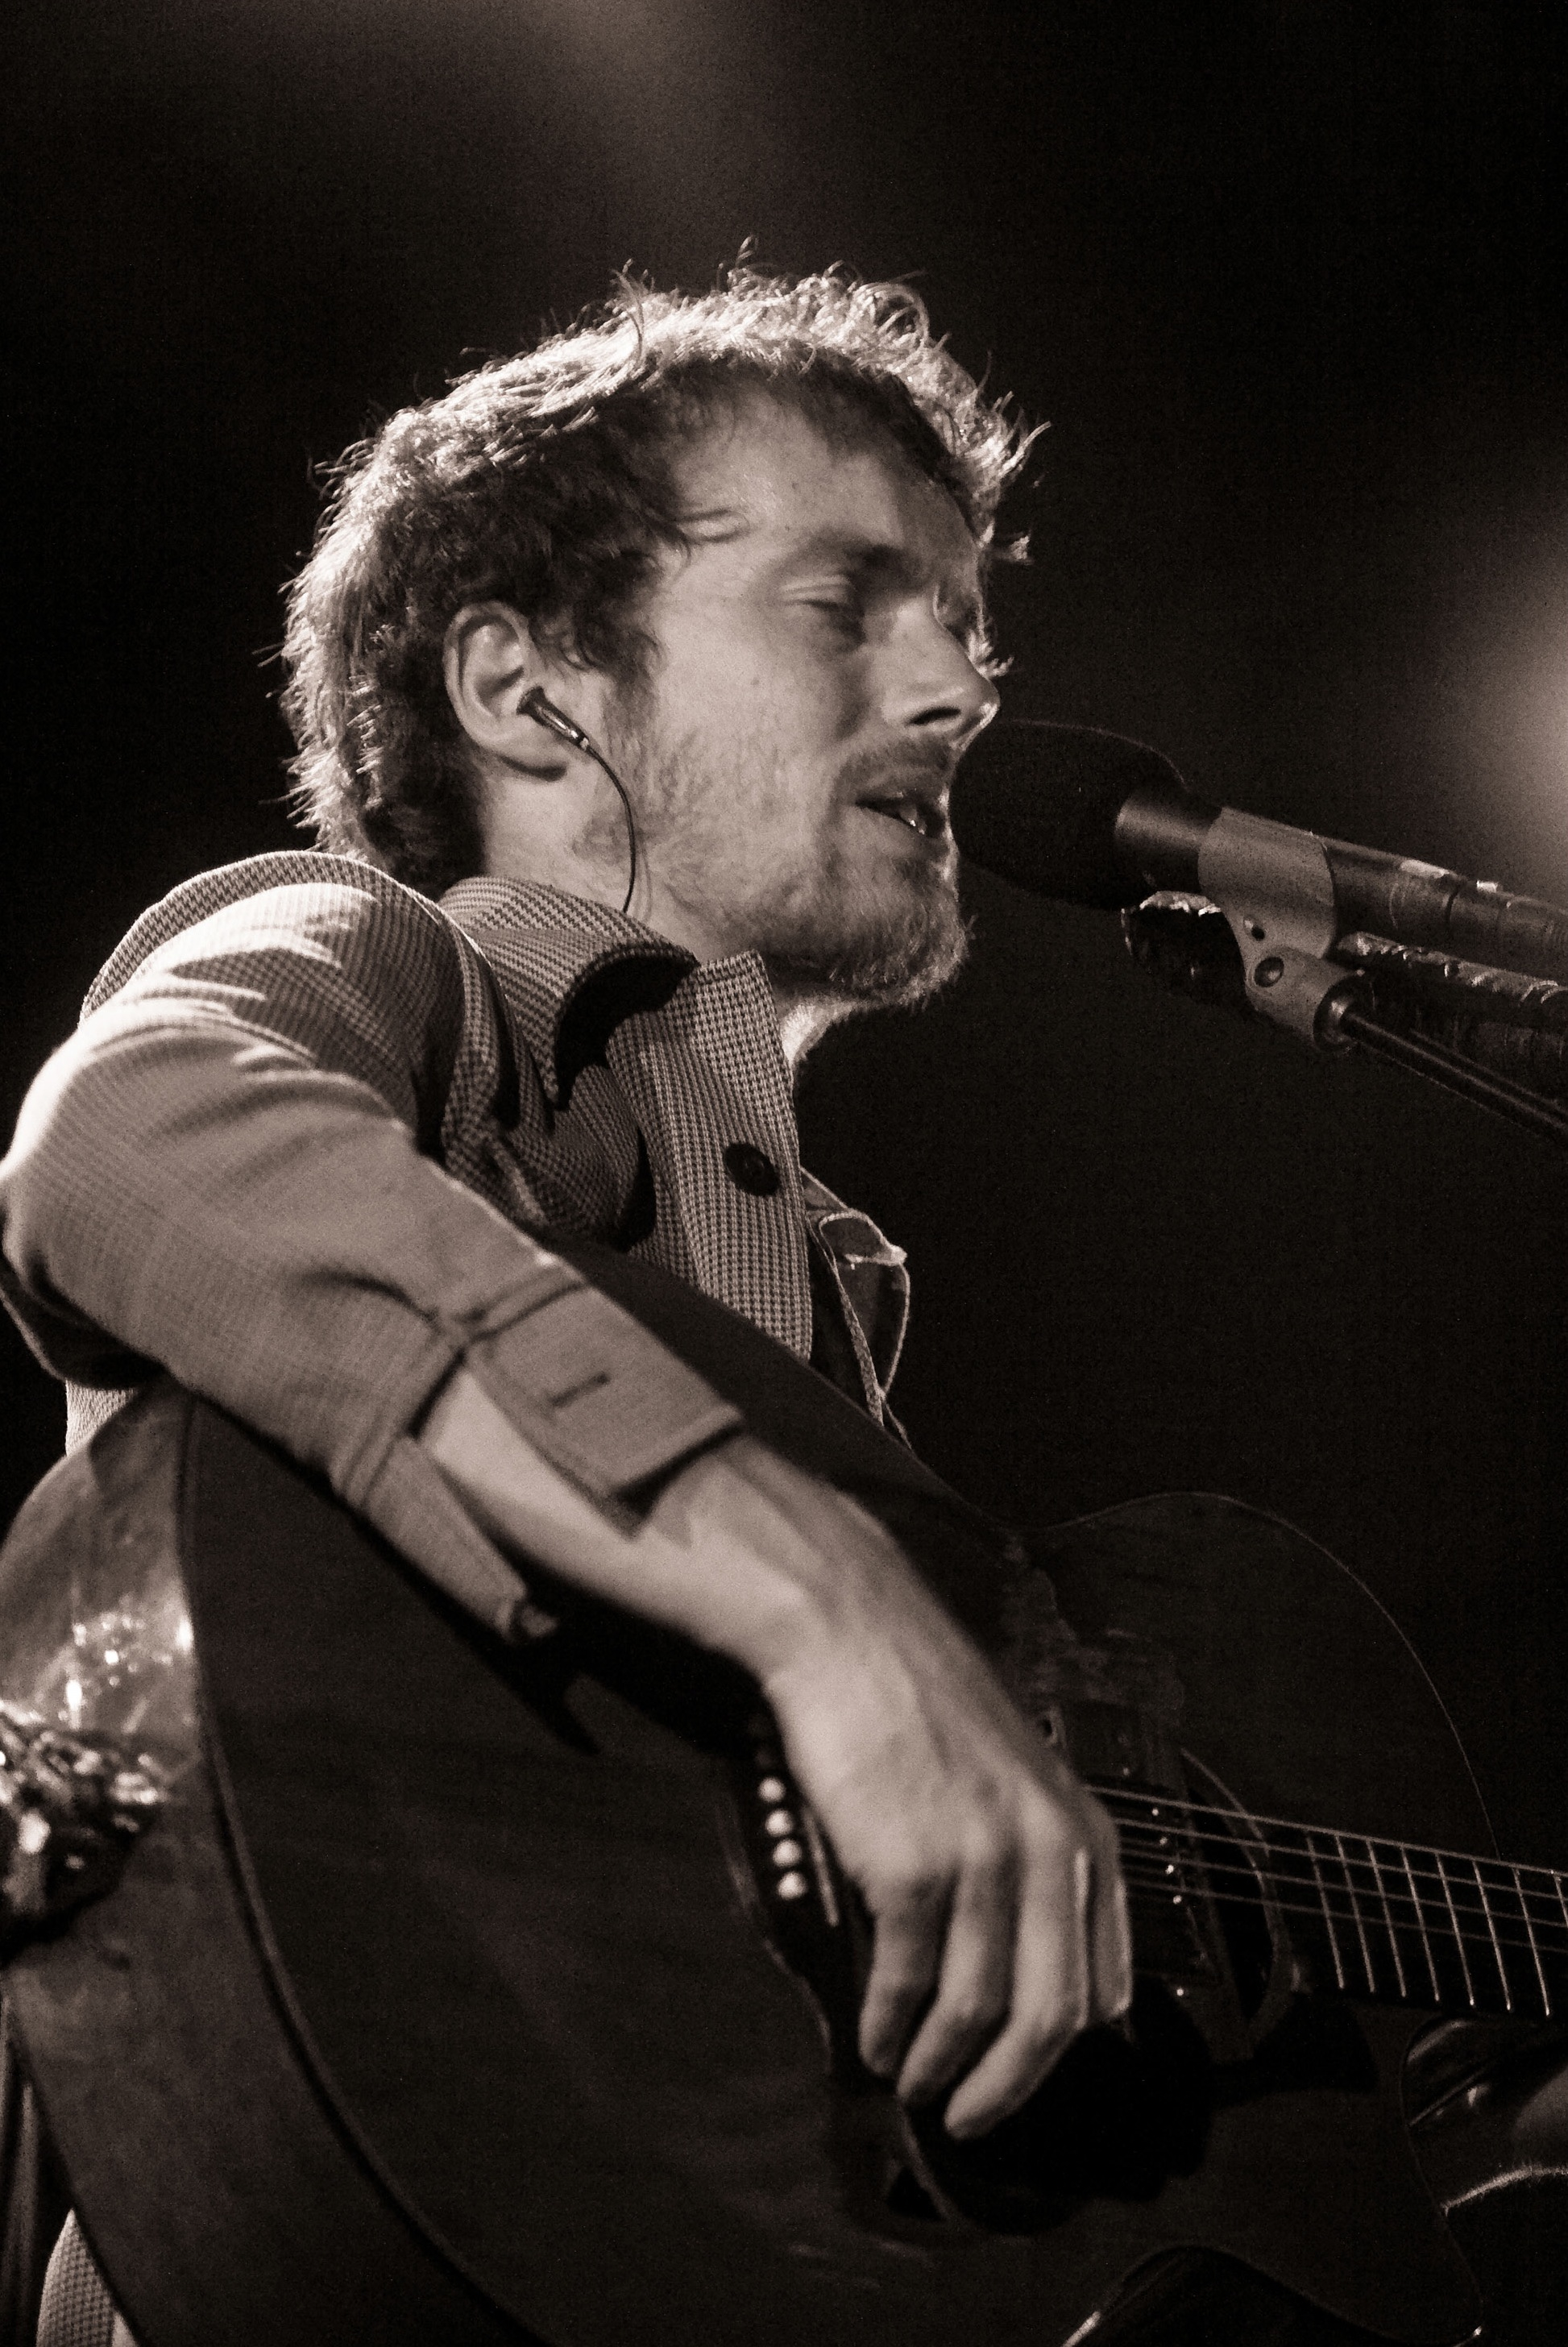 Damien Rice - Wikipedia, the free encyclopedia